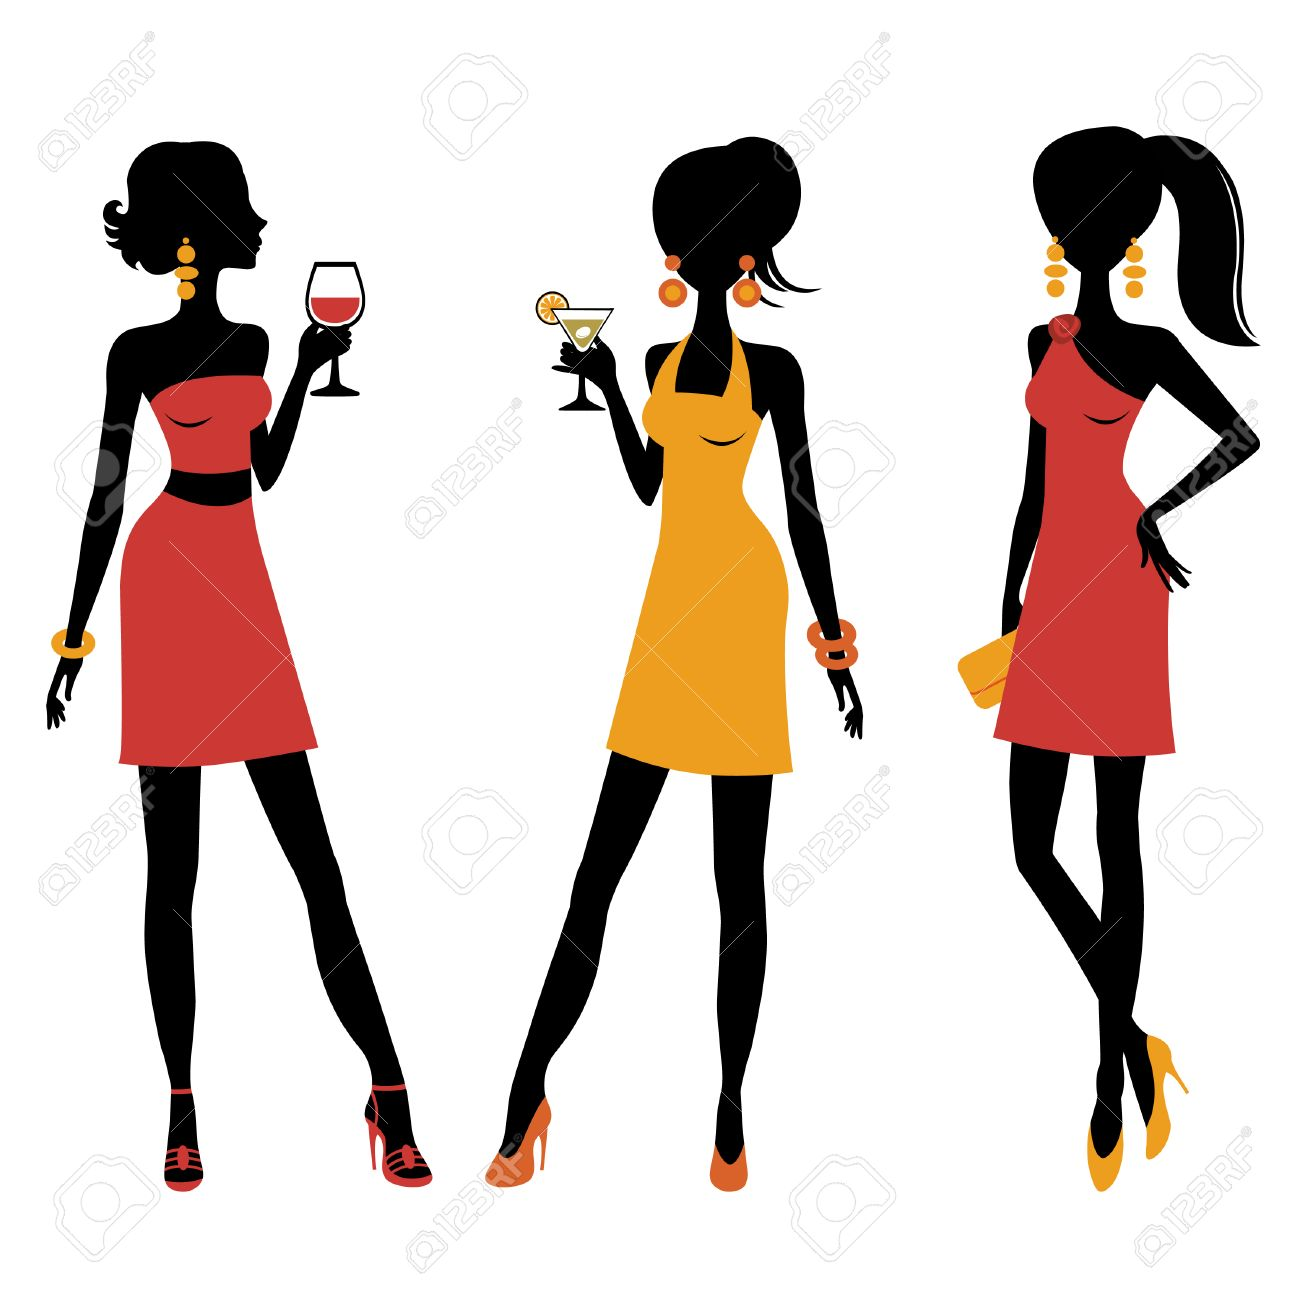 Party cocktail. Clipart free download best